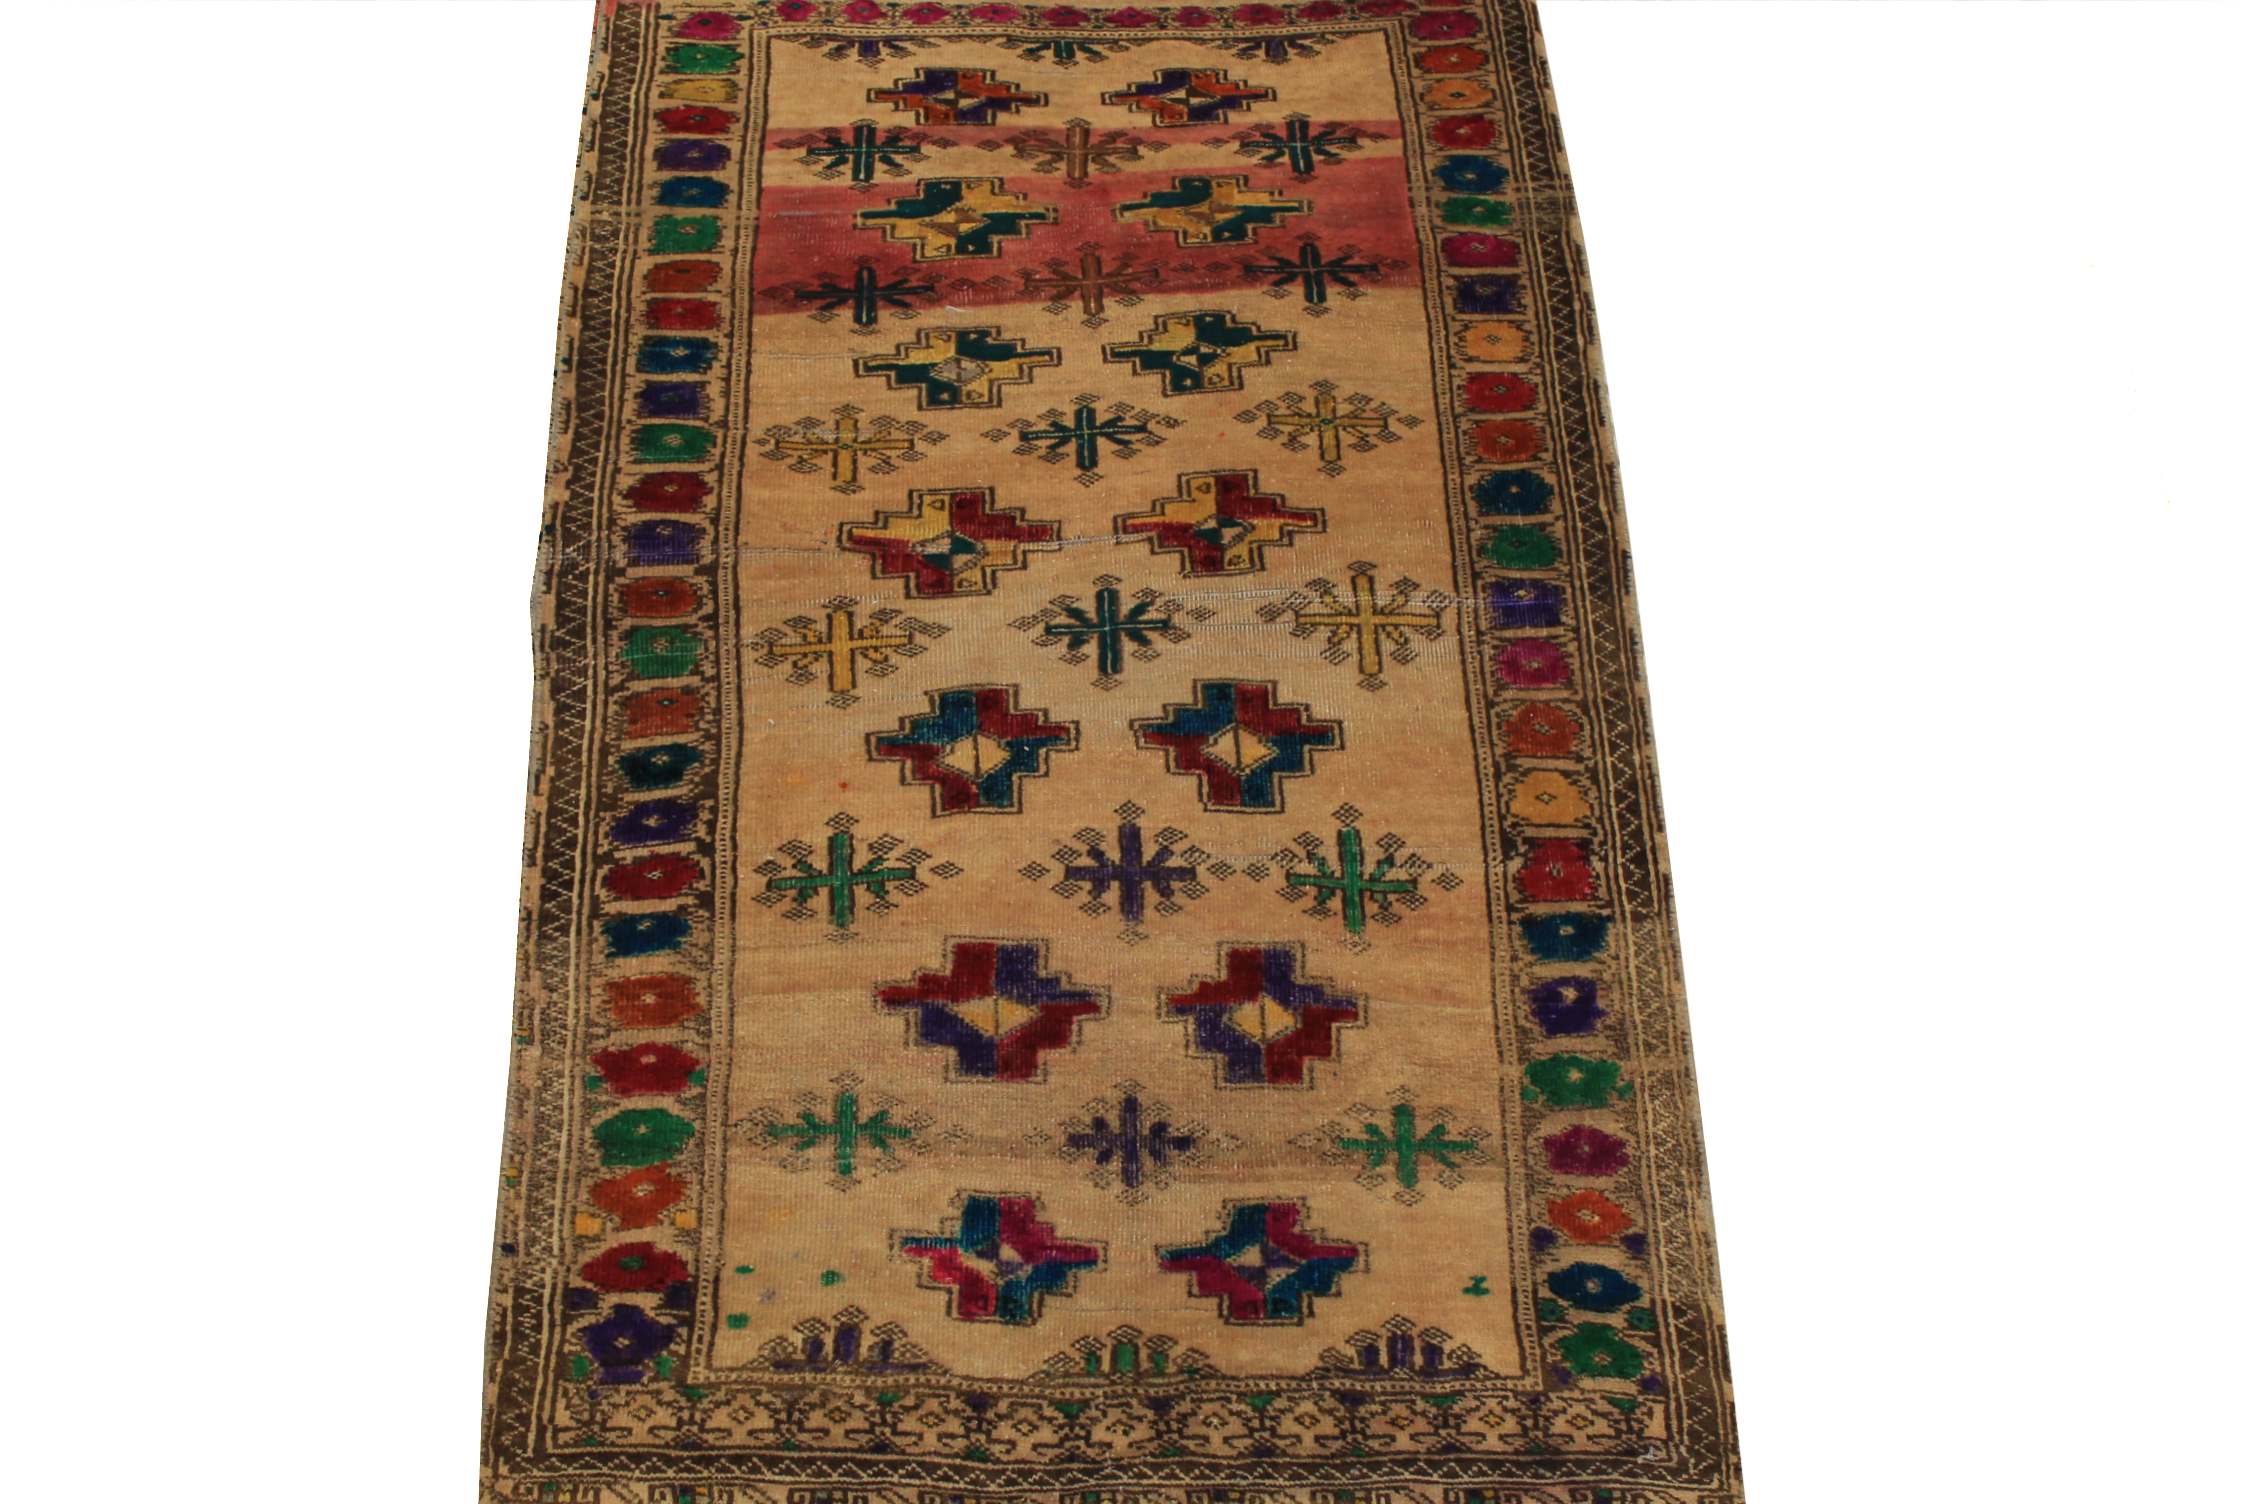 2X4 Vintage Hand Knotted Wool Area Rug - MR024440